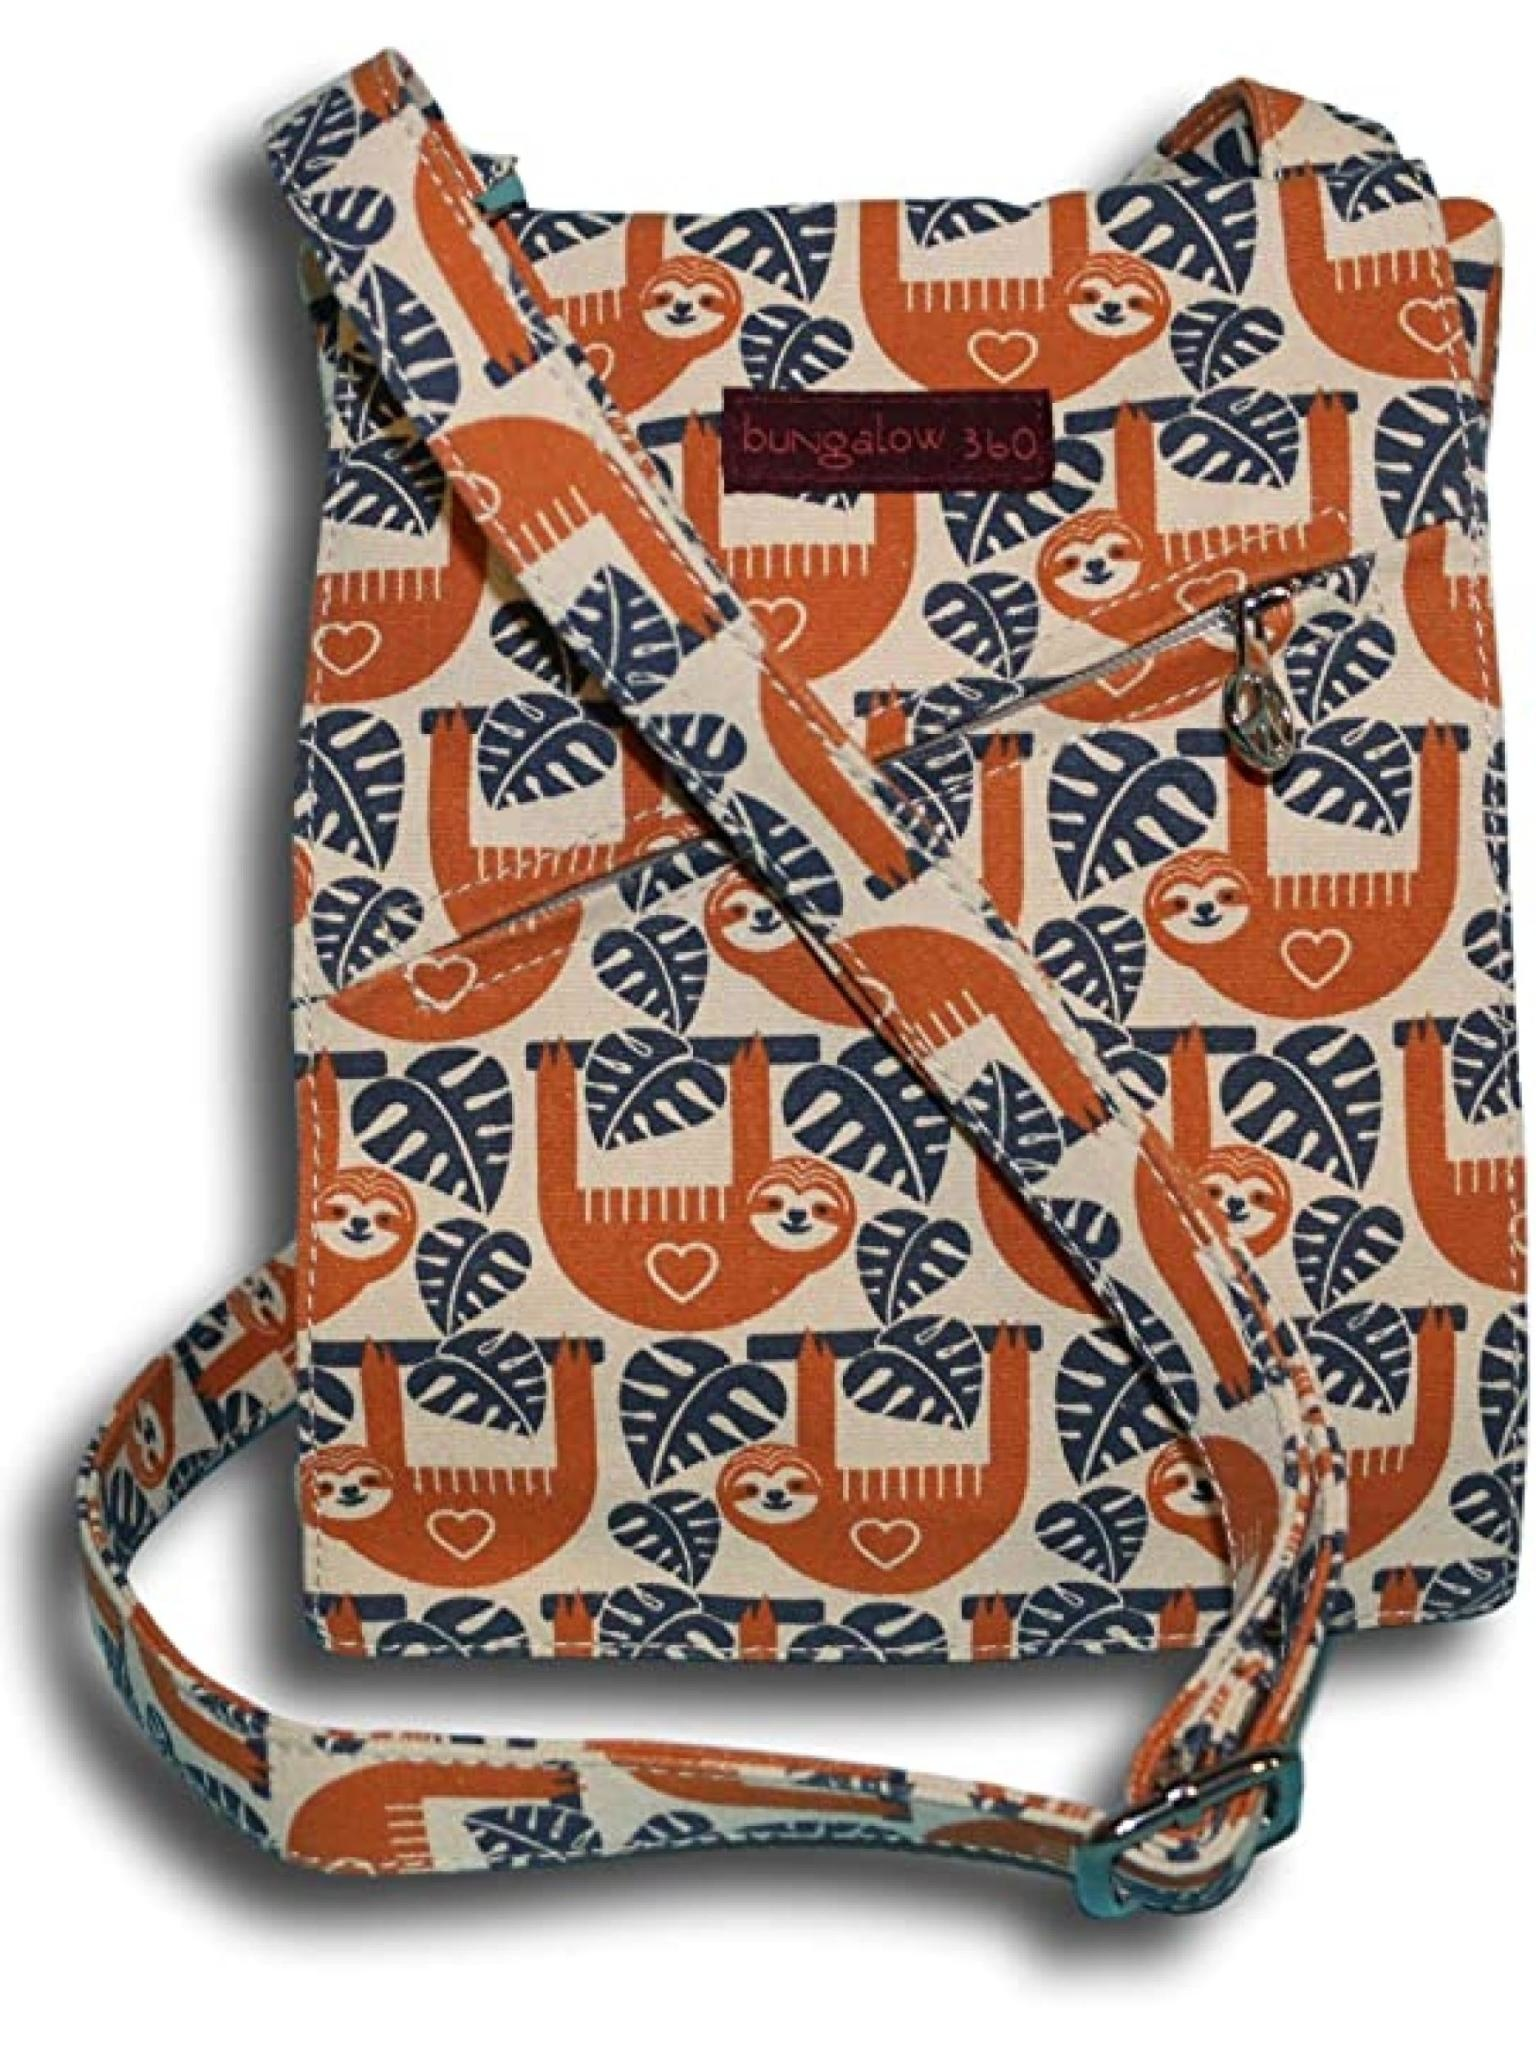 Bungalow 360 Small Messenger Sloth